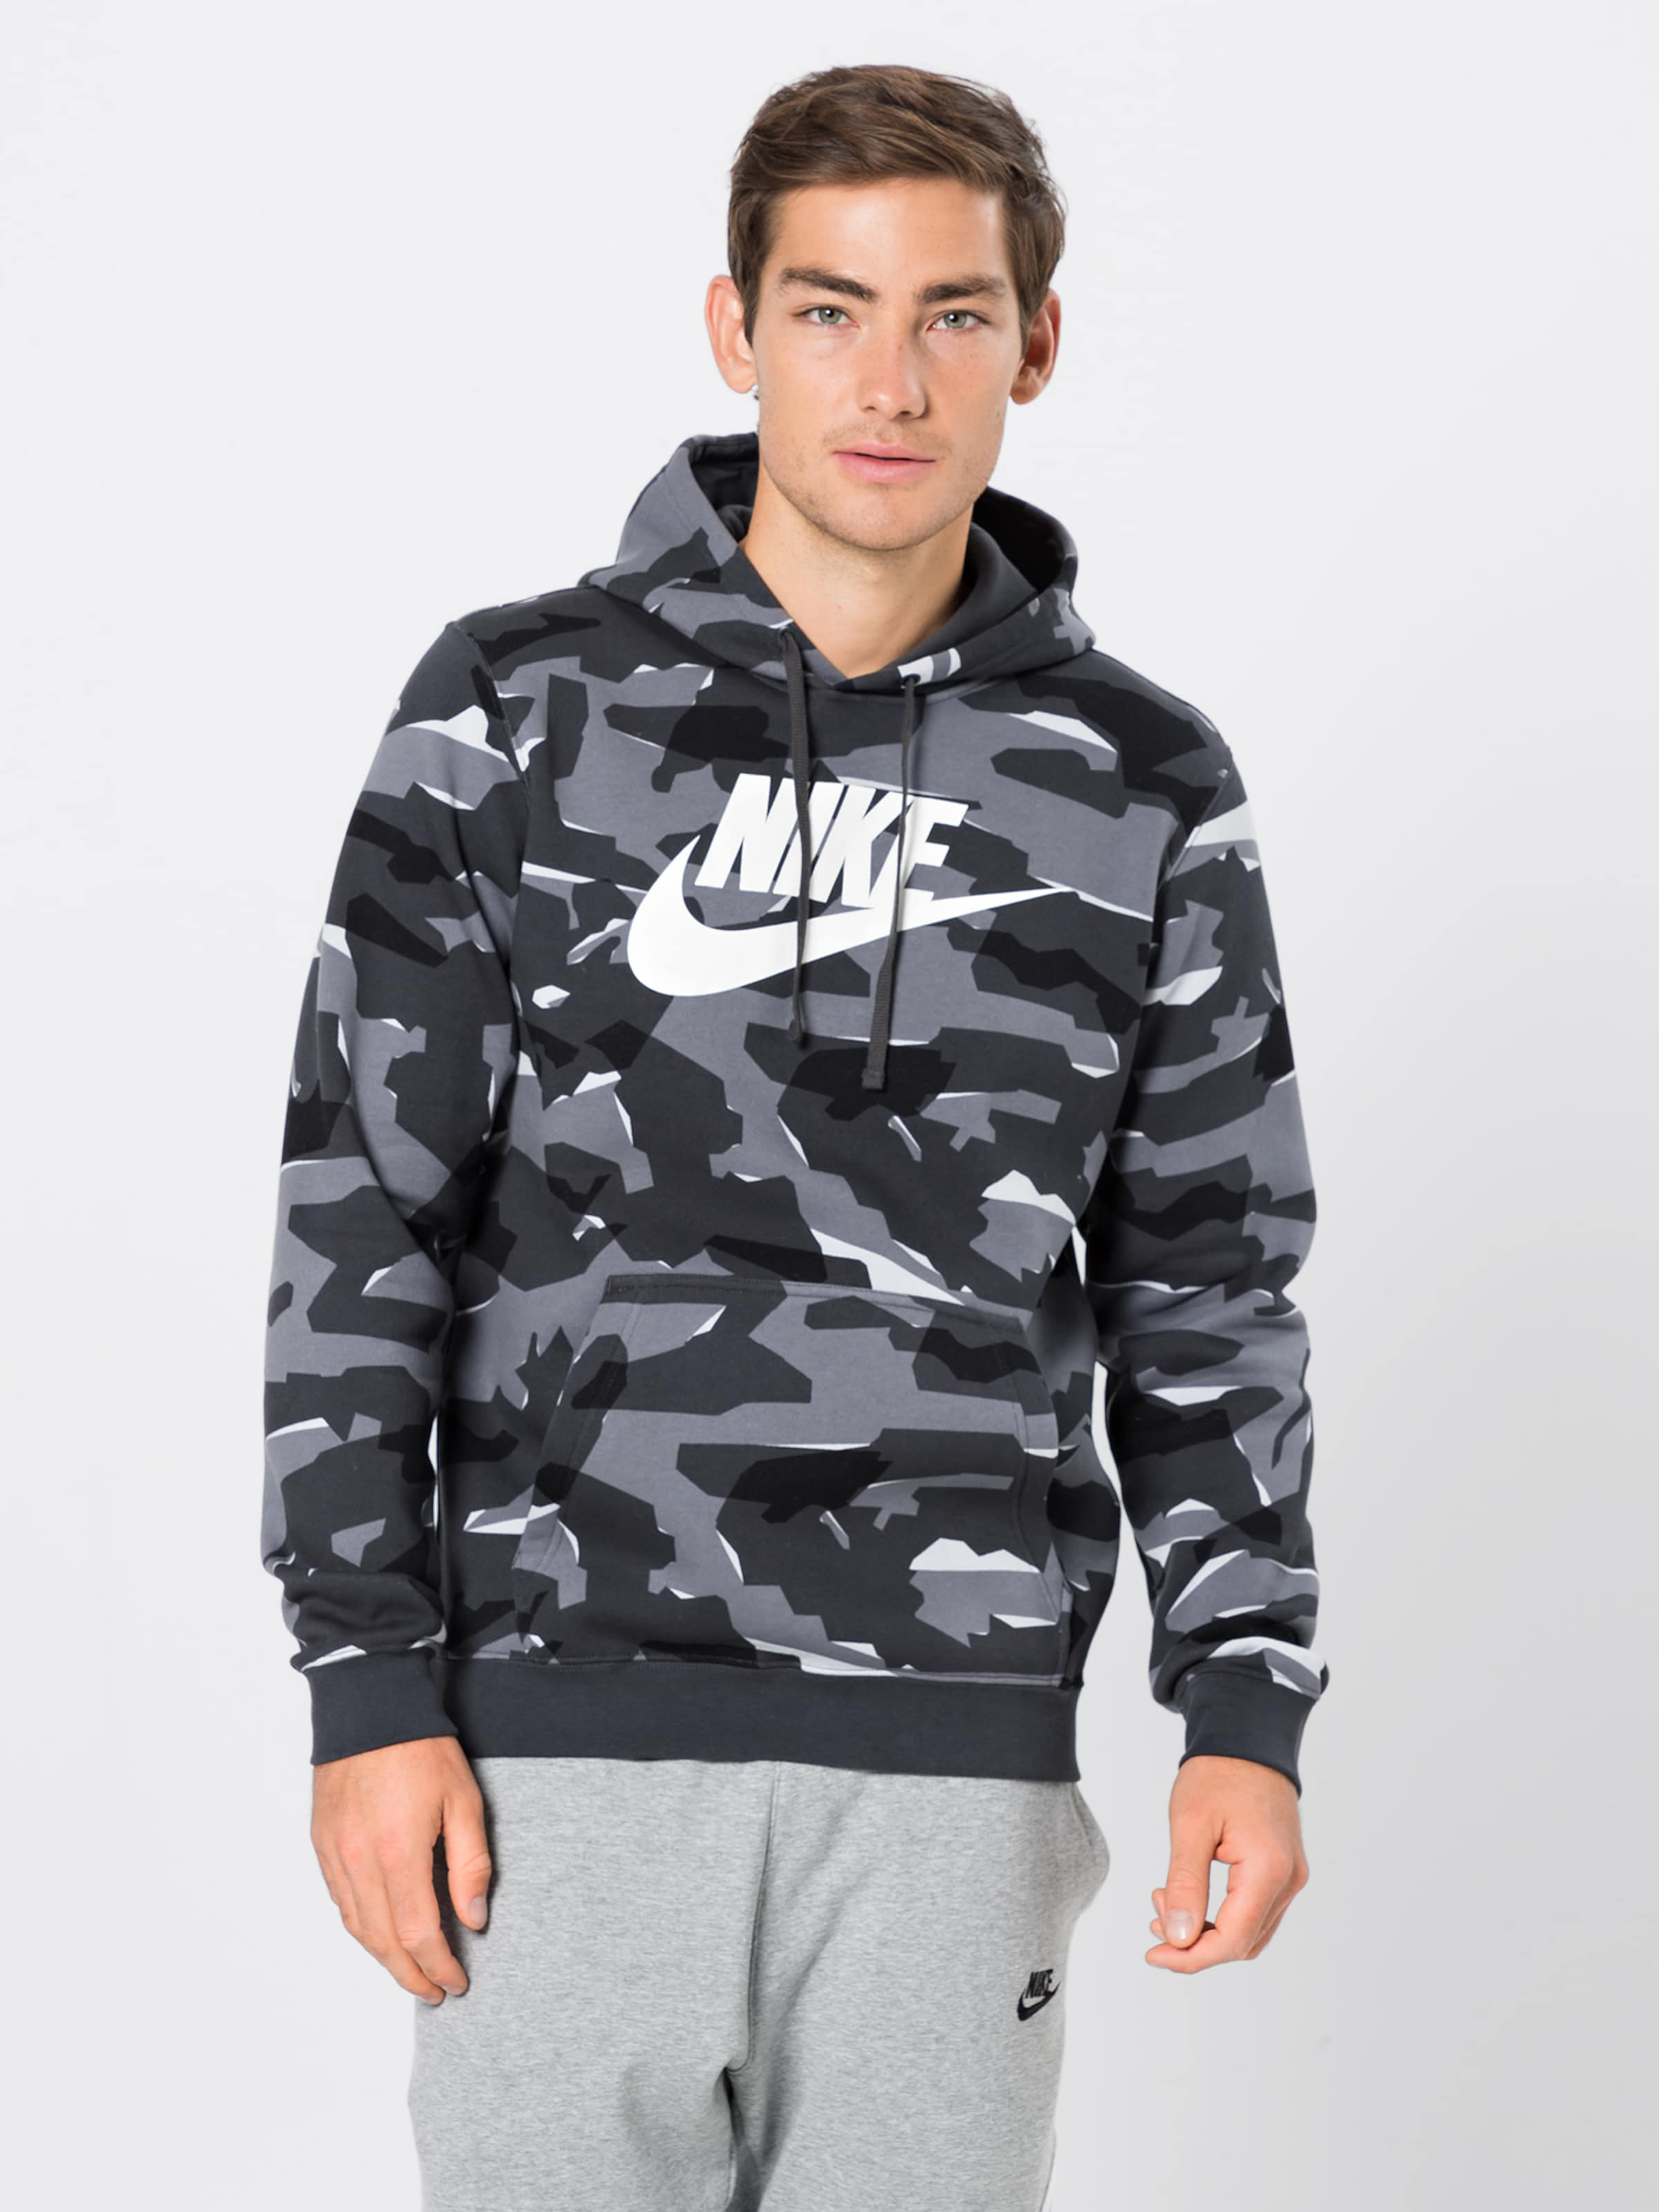 shirt Sweat Sportswear En Nike GrisNoir sQthdCr